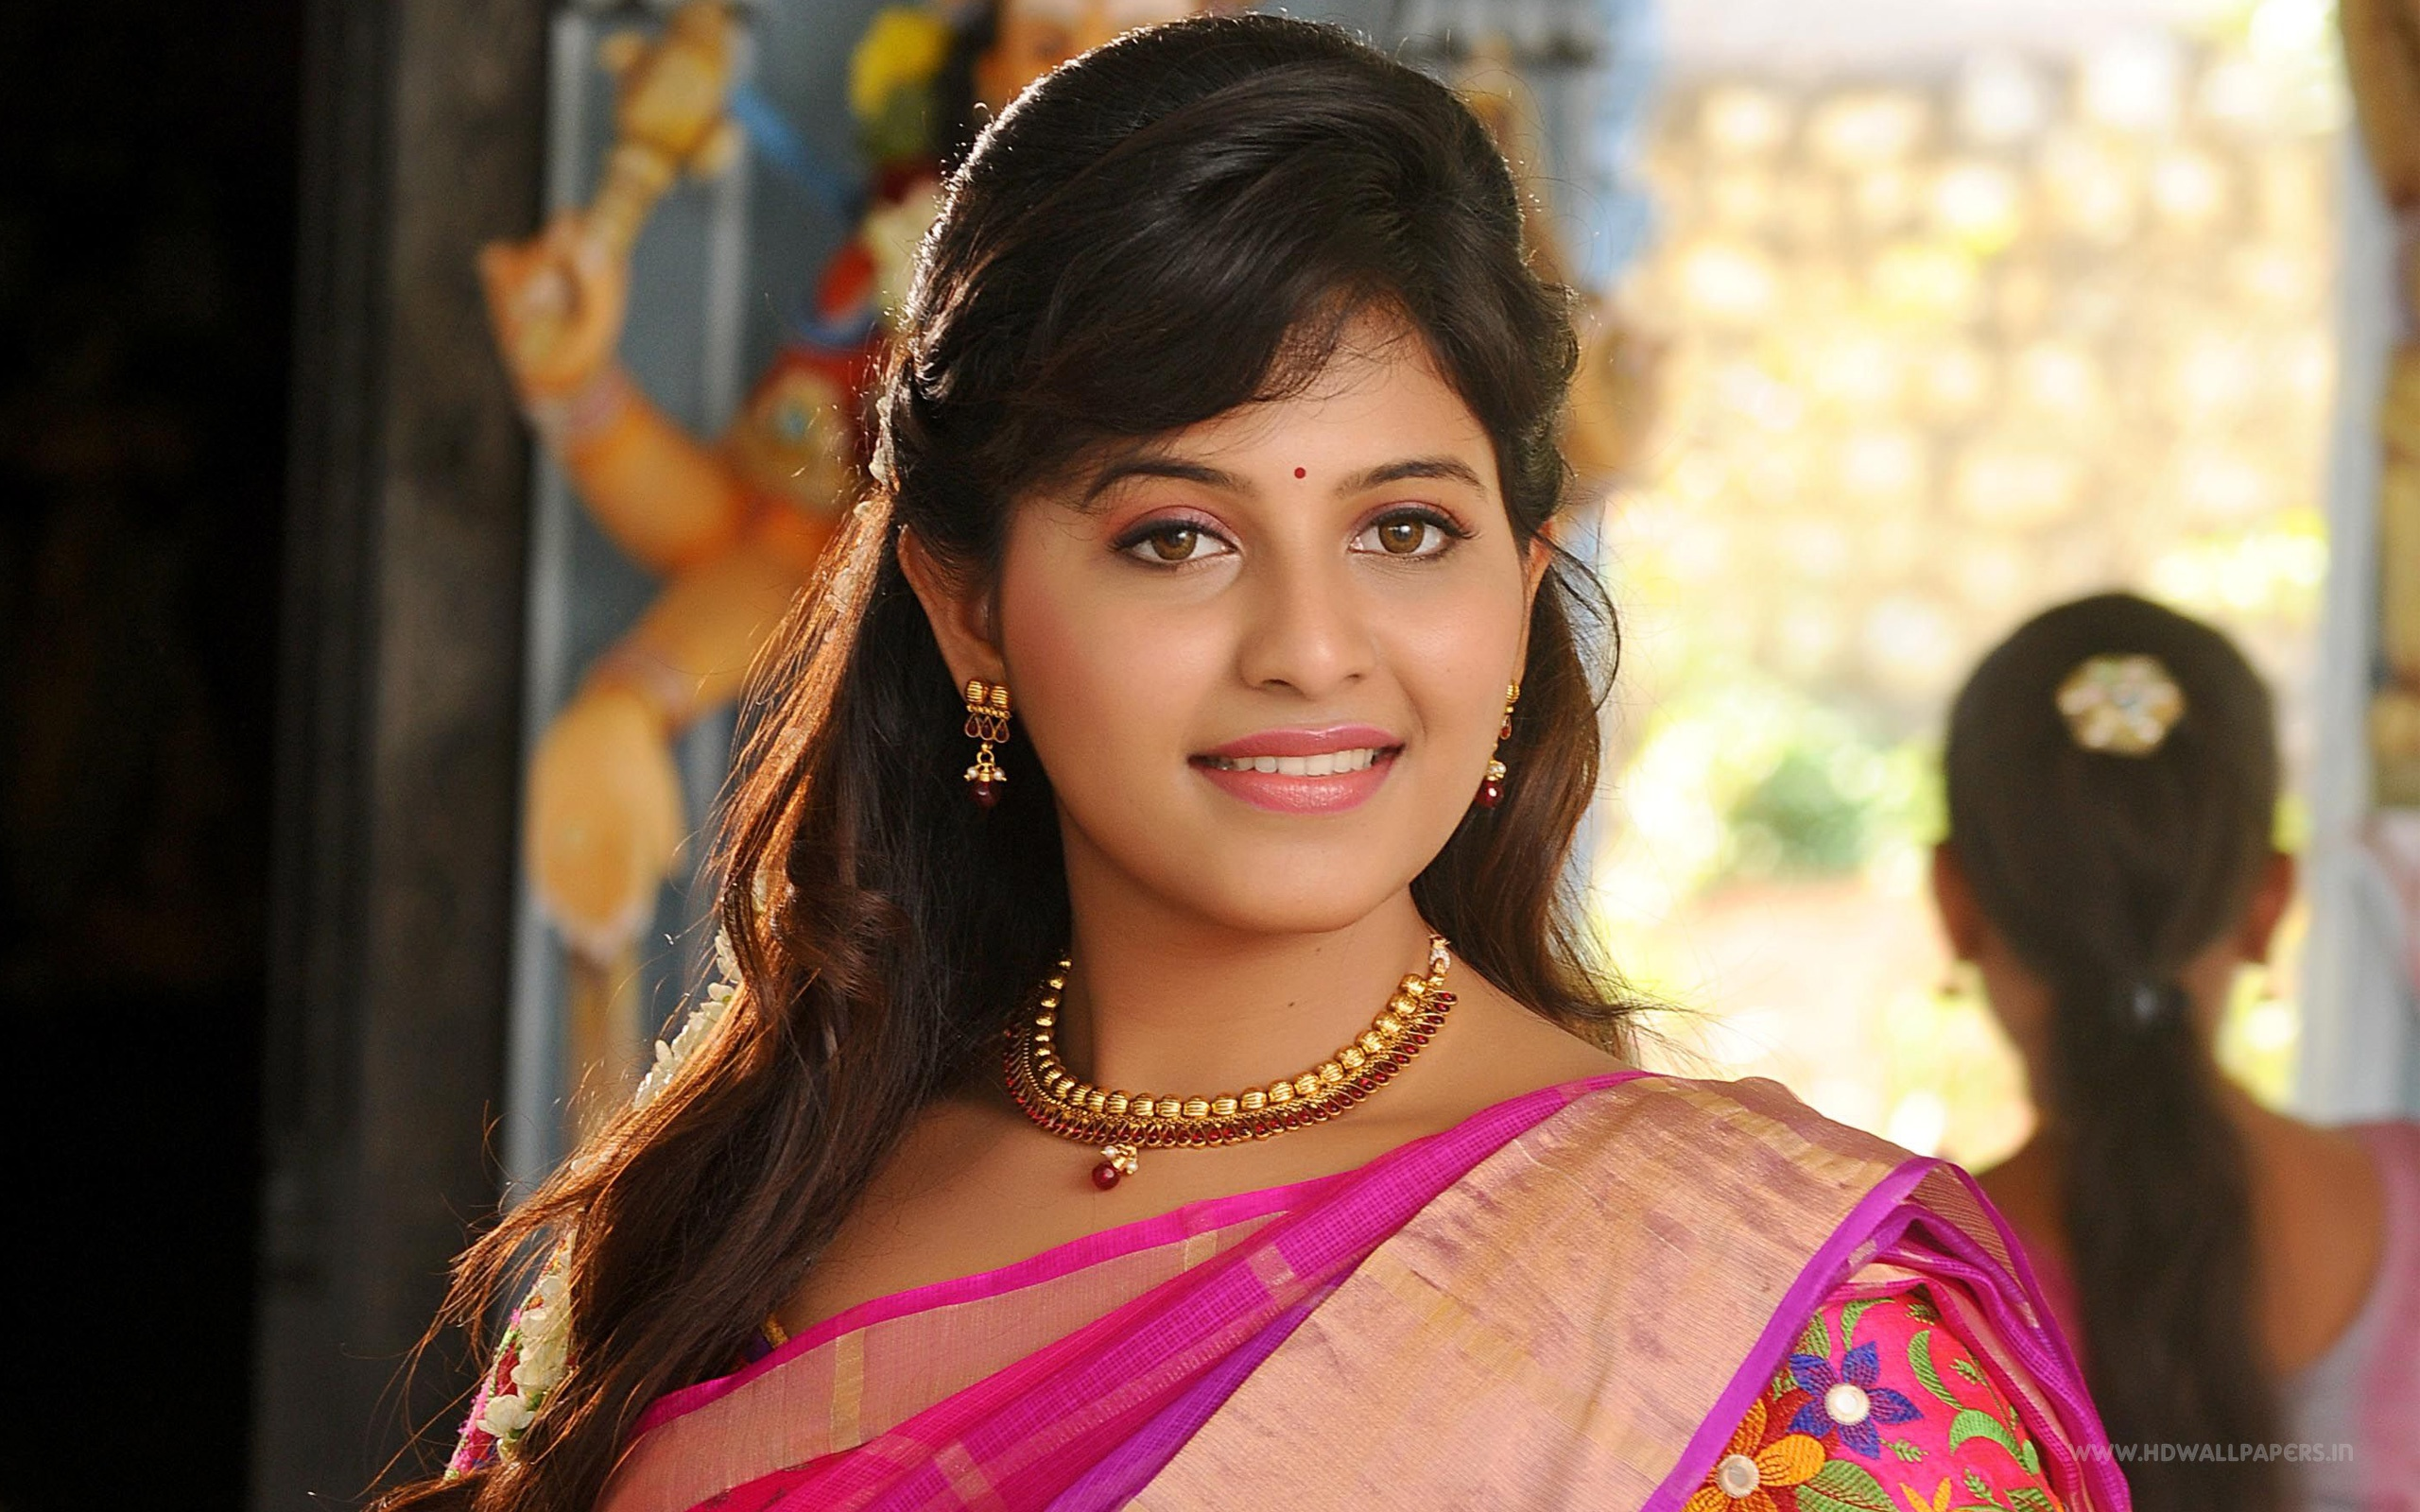 anjali tamil actress wallpapers in jpg format for free download